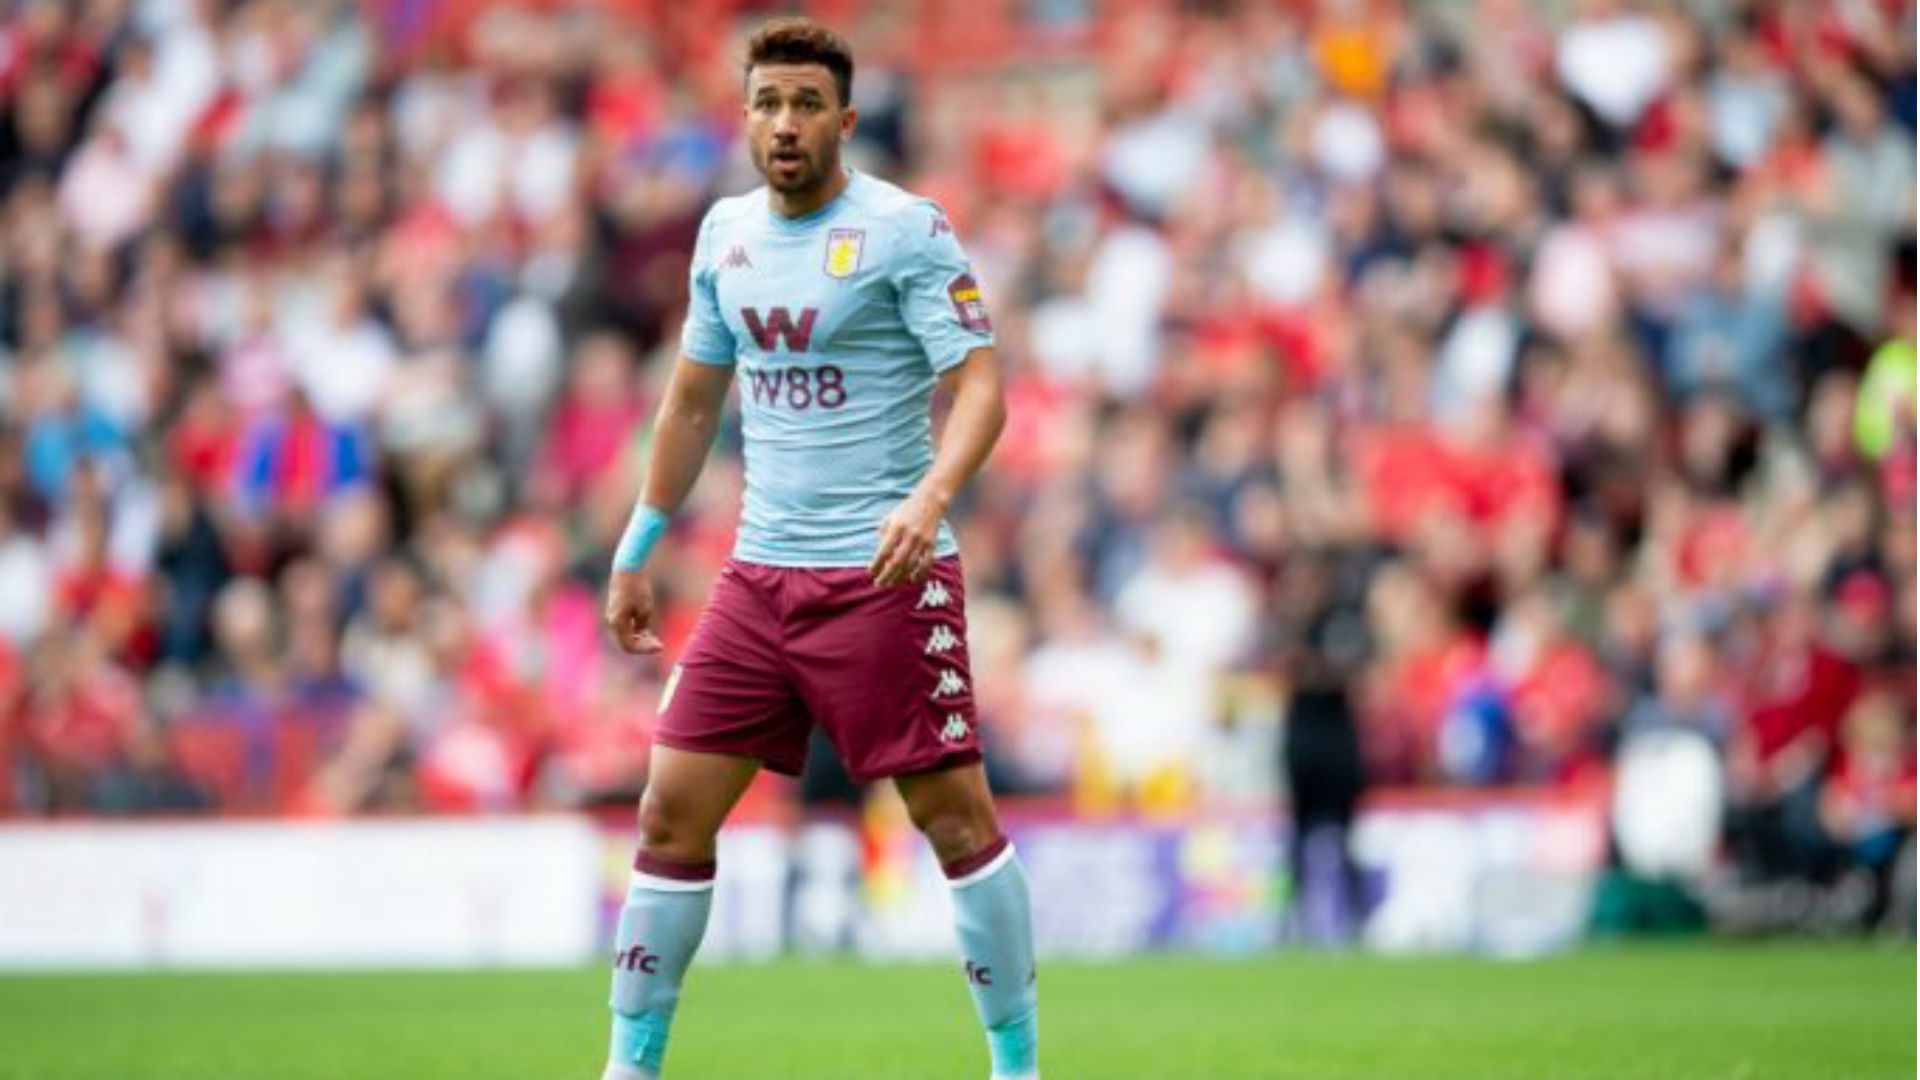 Aston Villa revived their hopes of avoiding relegation from the English Premier League (EPL) by ending a 10-game winless streak on Sunday. Two goals by Egyptian forward Trezeguet gave them a 2-0 home win over Crystal Palace. The result lifted Aston Villa one place to 18th on 30 points from 35 games, but they are […]